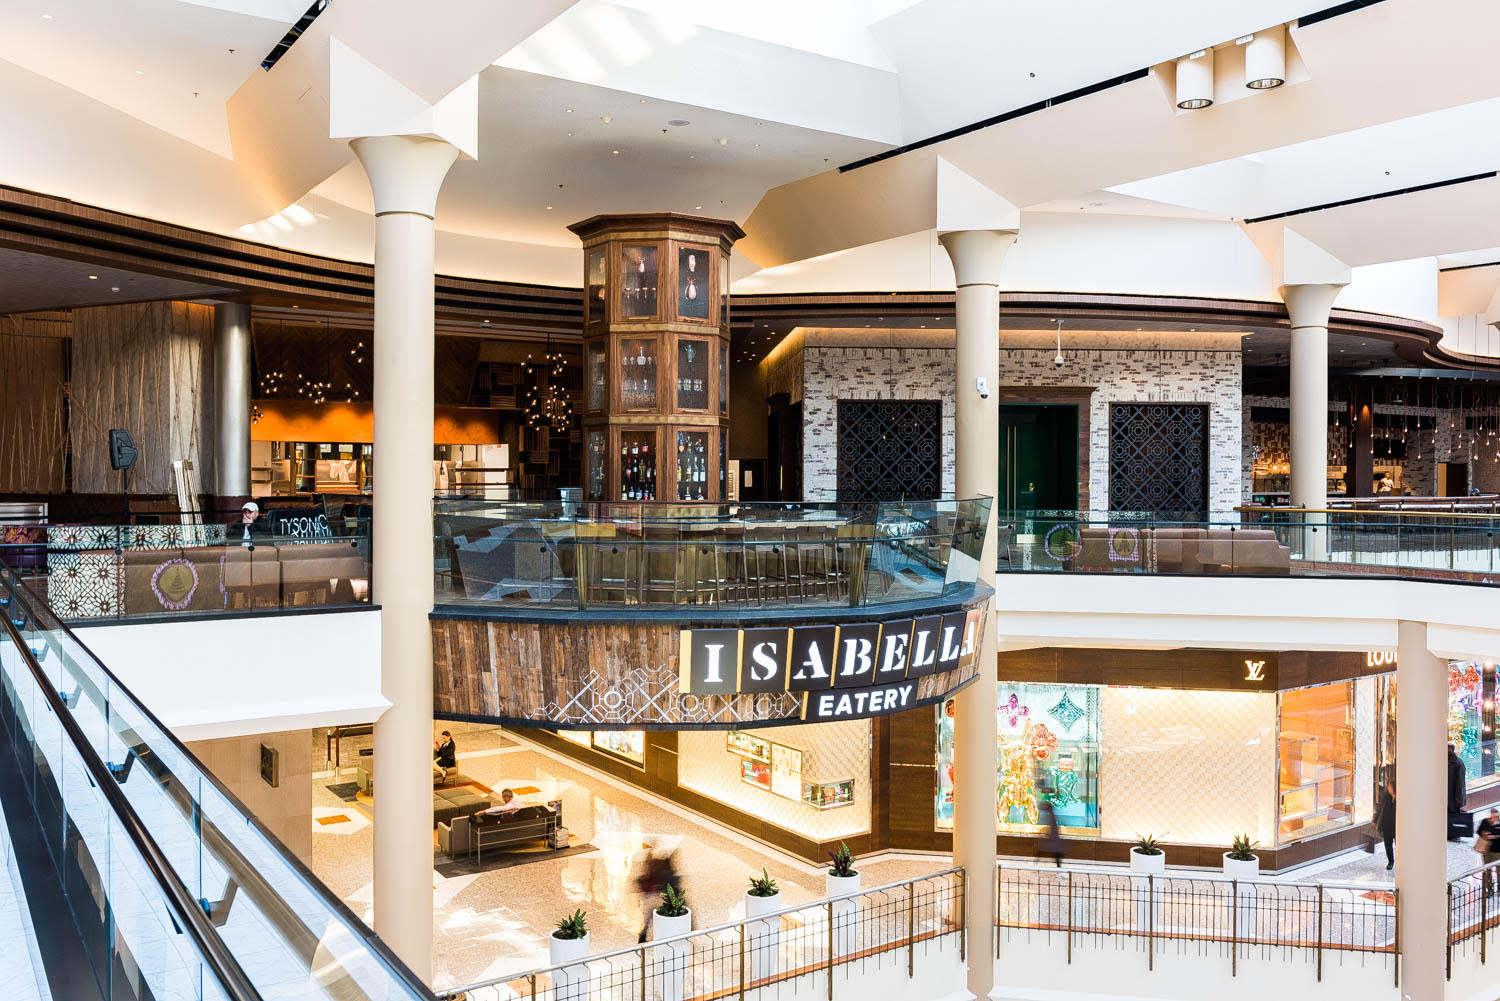 Isabella Eatery Opens in Tysons Corner, Be Prepared to Take Your Taste Buds on Amazing Journey